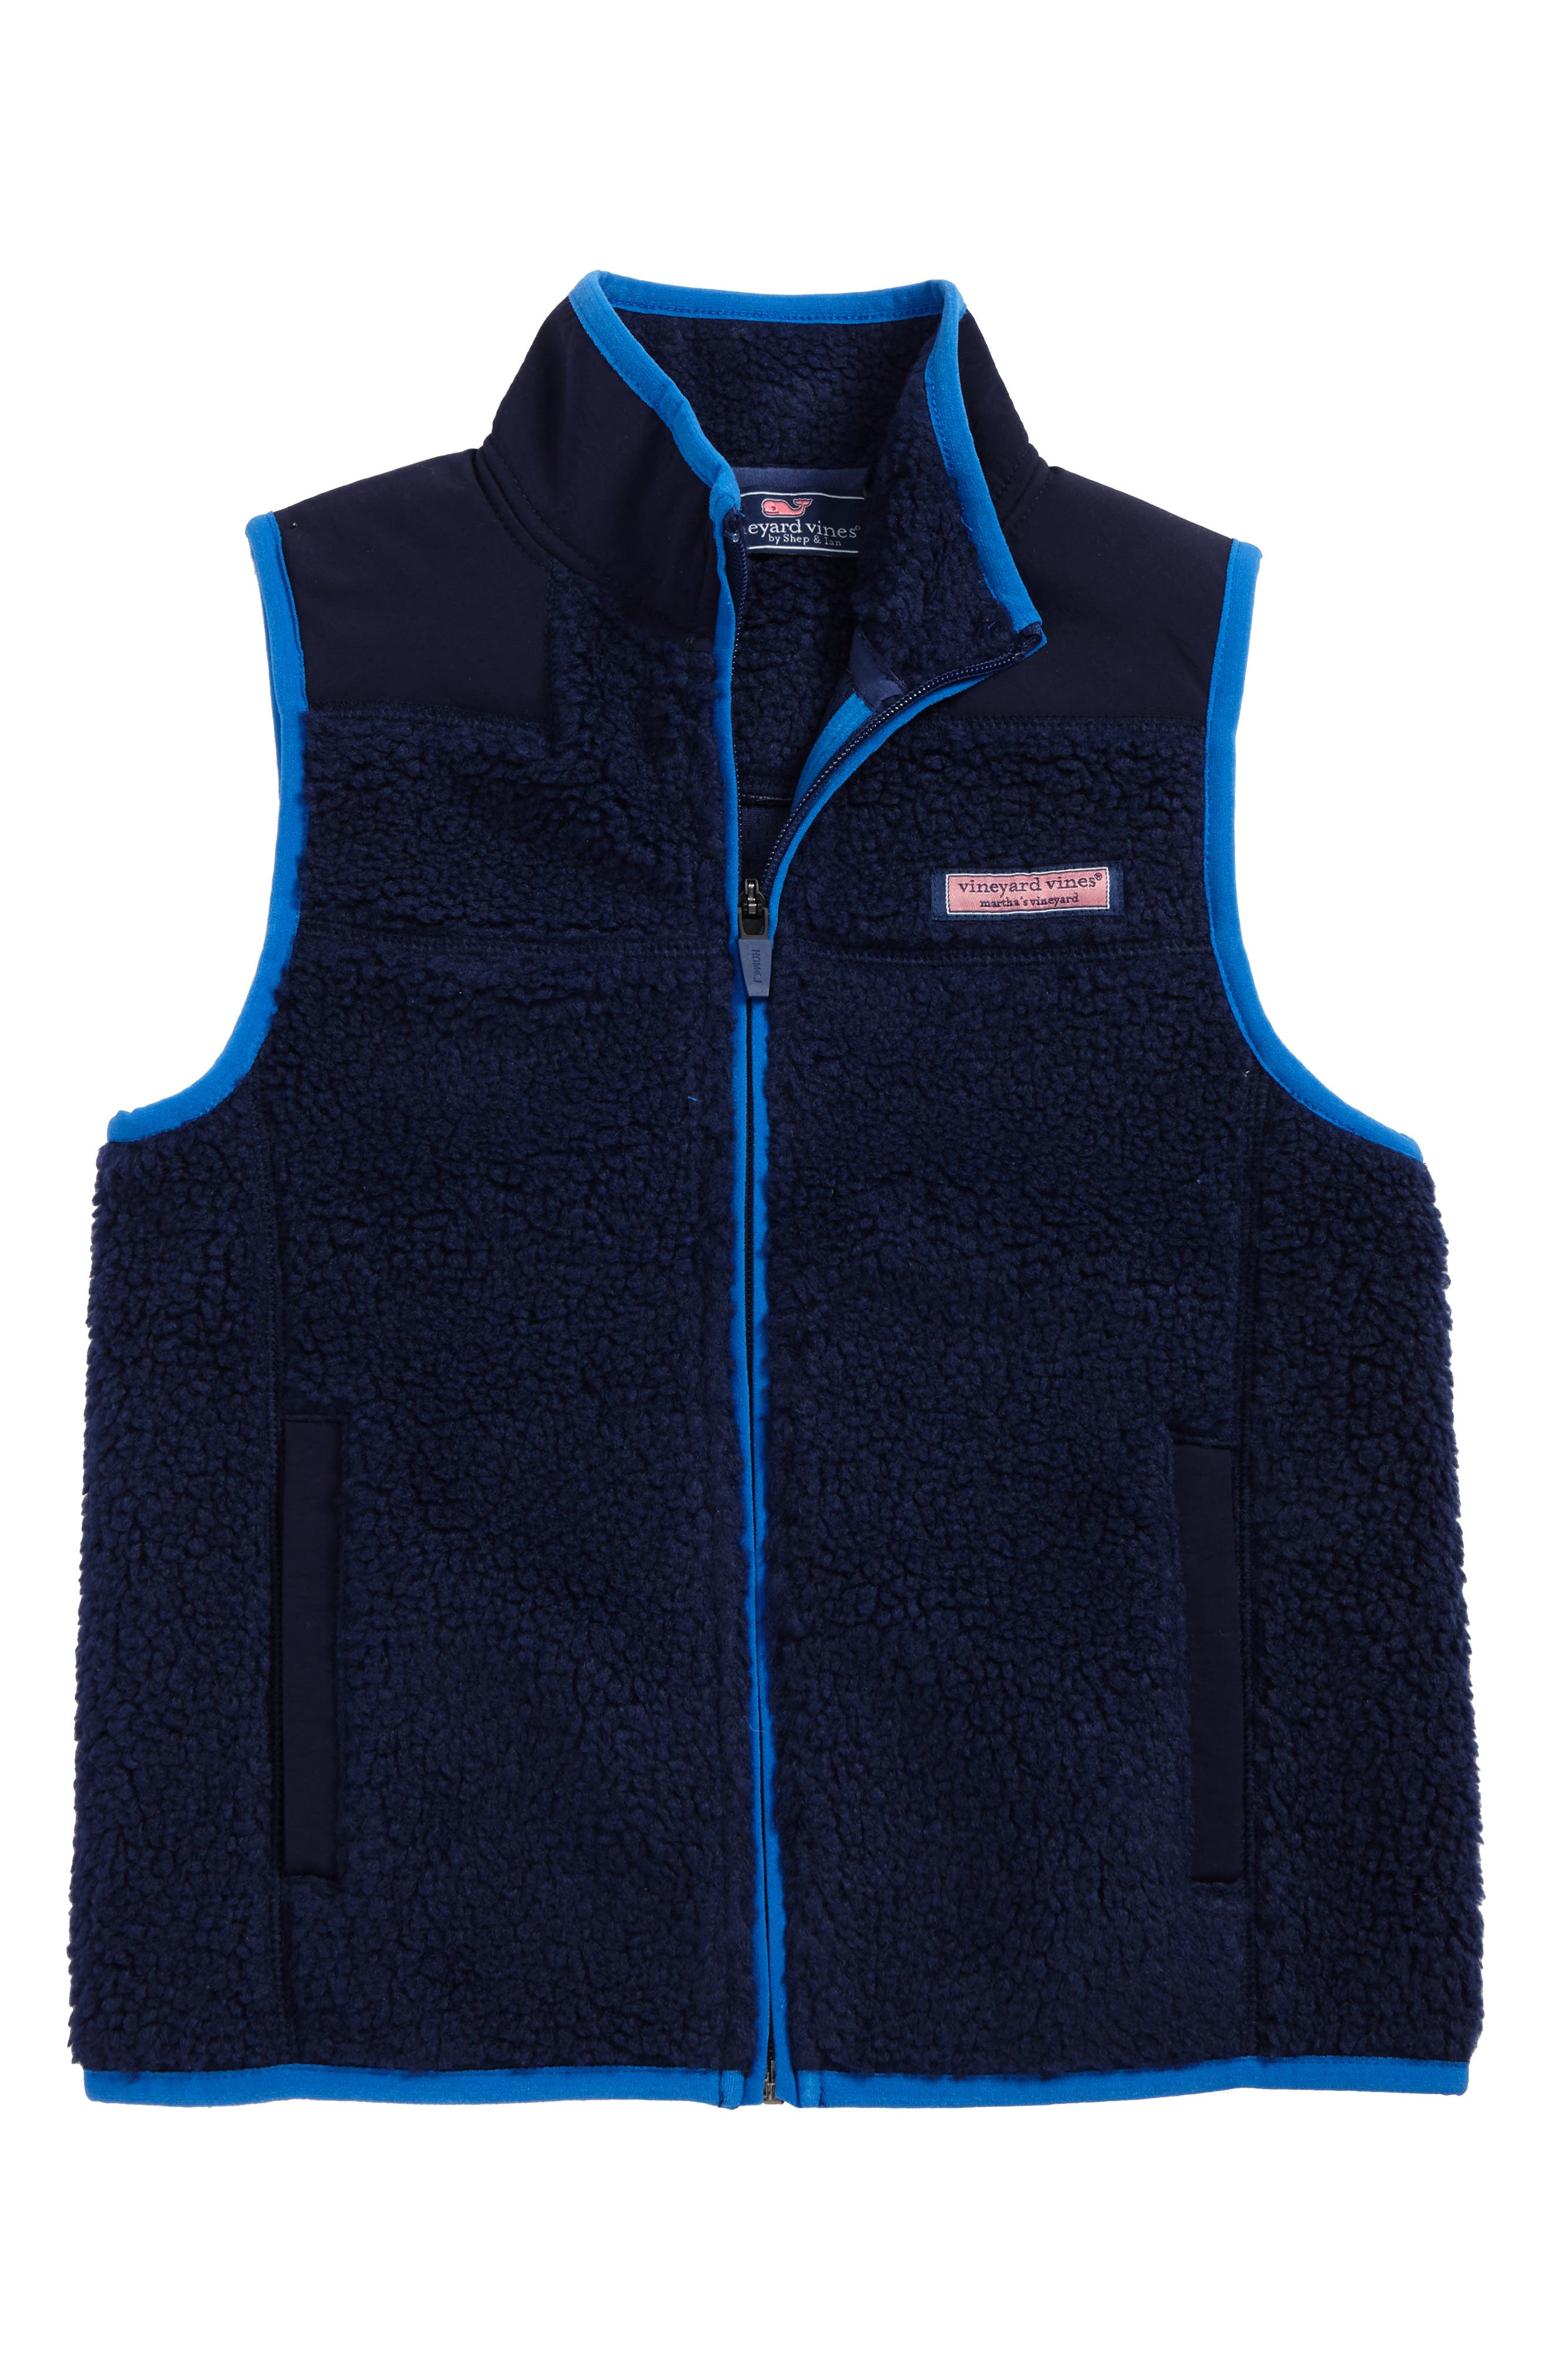 Main Image - vineyard vines Fleece Zip Vest (Toddler Boys & Little Boys)